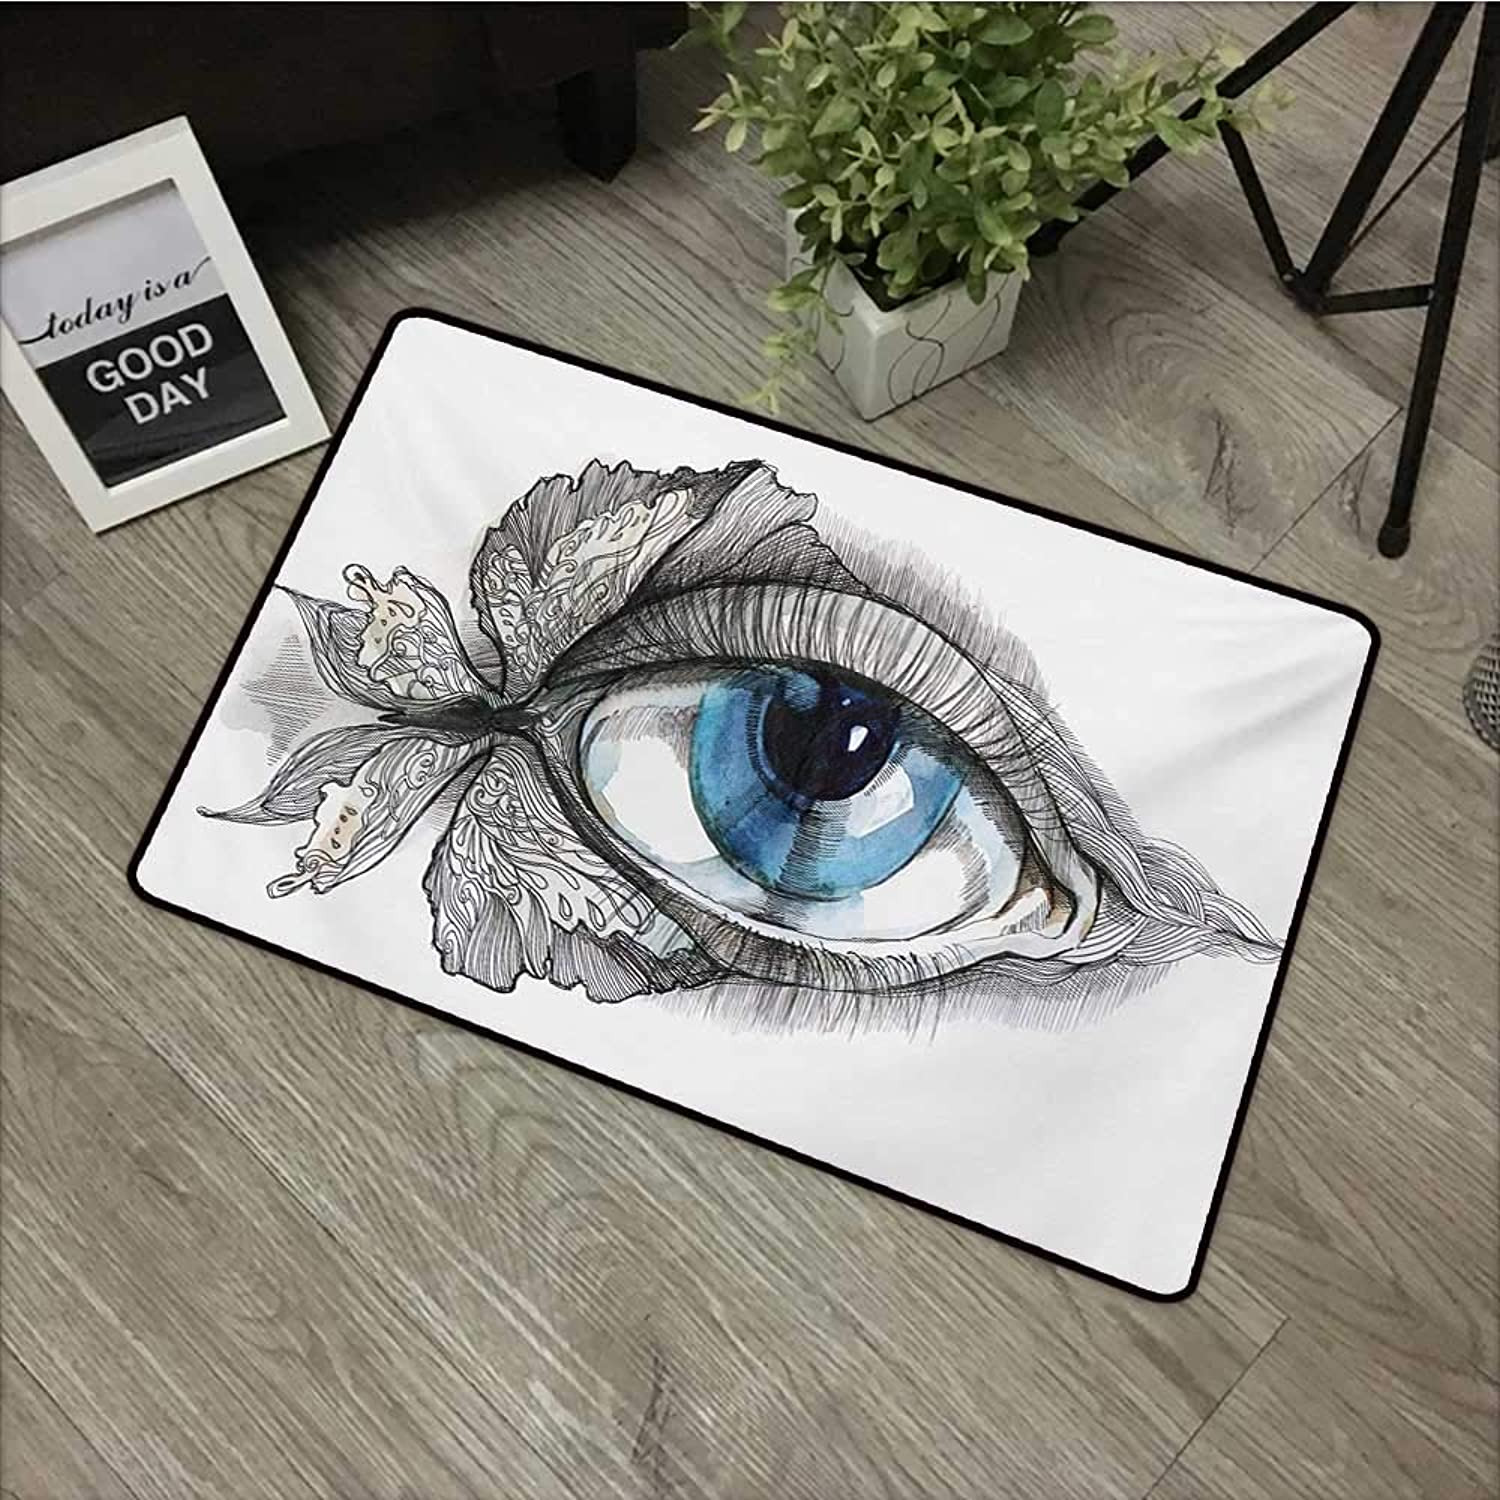 Clear printed pattern door mat W35 x L59 INCH Eye,Abstract Human Eye with Butterfly Eyelashes Painting Style Dreamy Female Look,Black White bluee Non-slip, with non-slip backing,Non-slip Door Mat Carpe